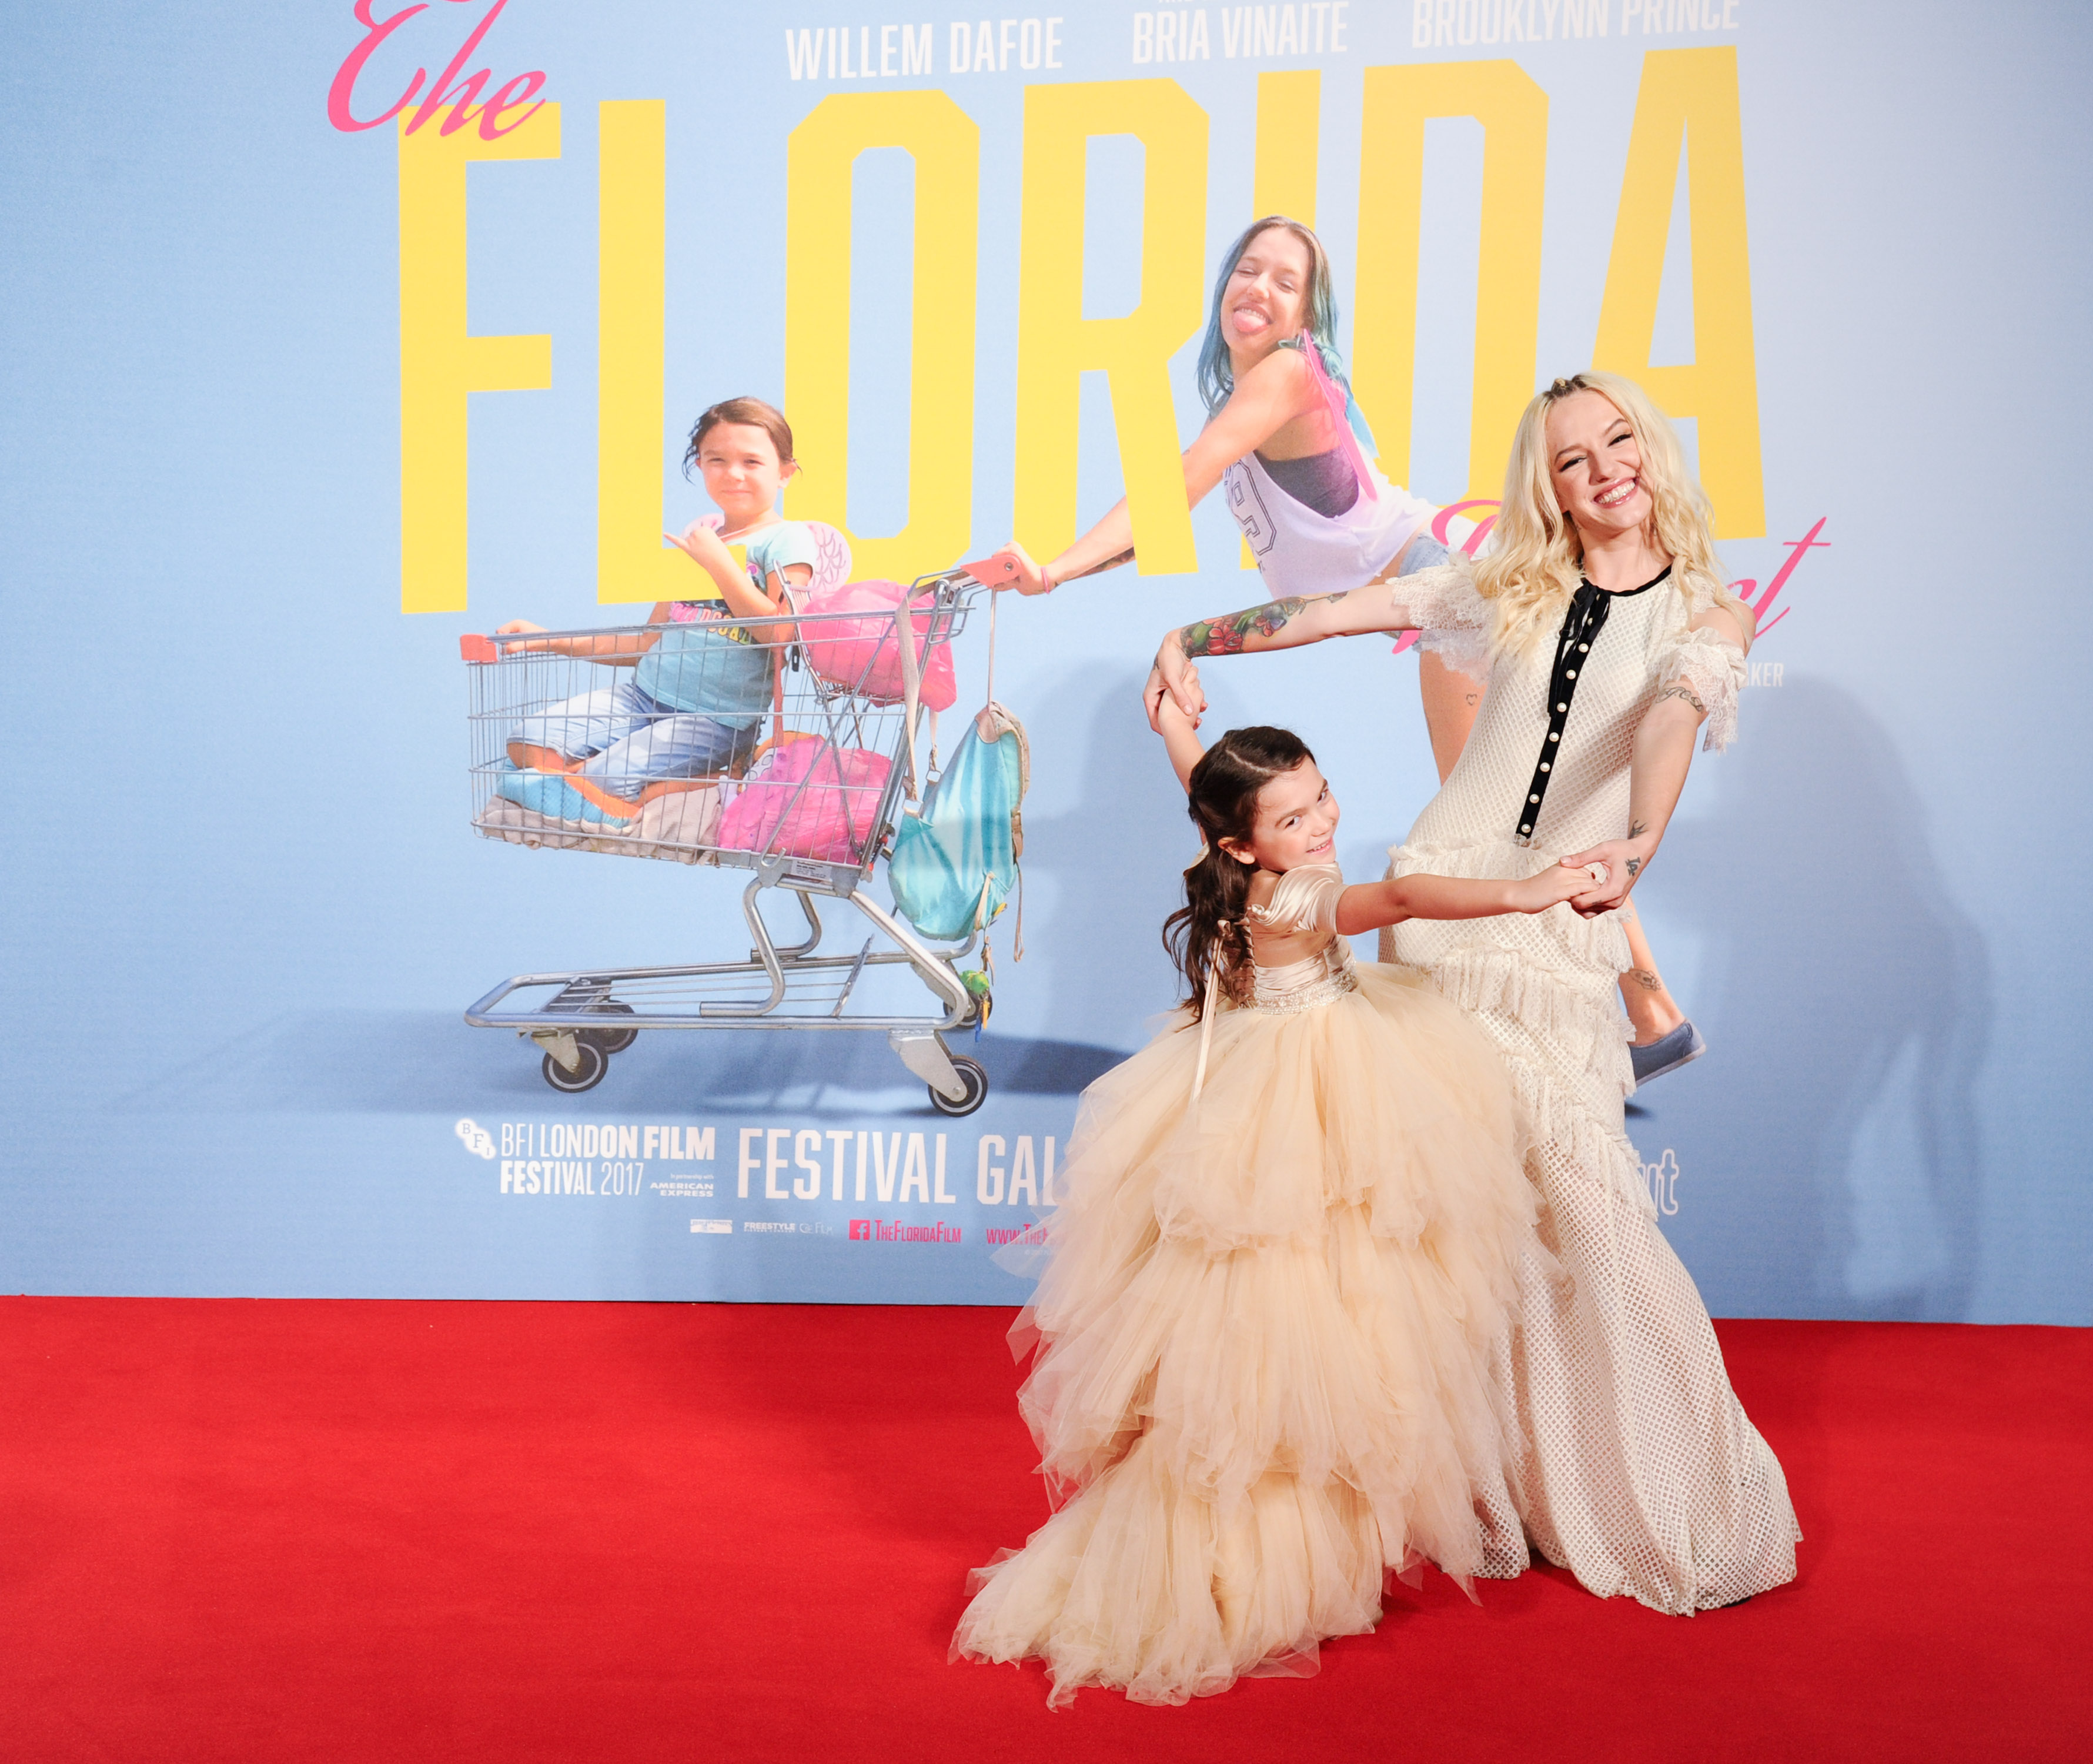 Brooklyn Kimberly Prince & Bria Vinaite'The Florida Project' premiere, BFI London Film Festival, UK - 13 Oct 2017